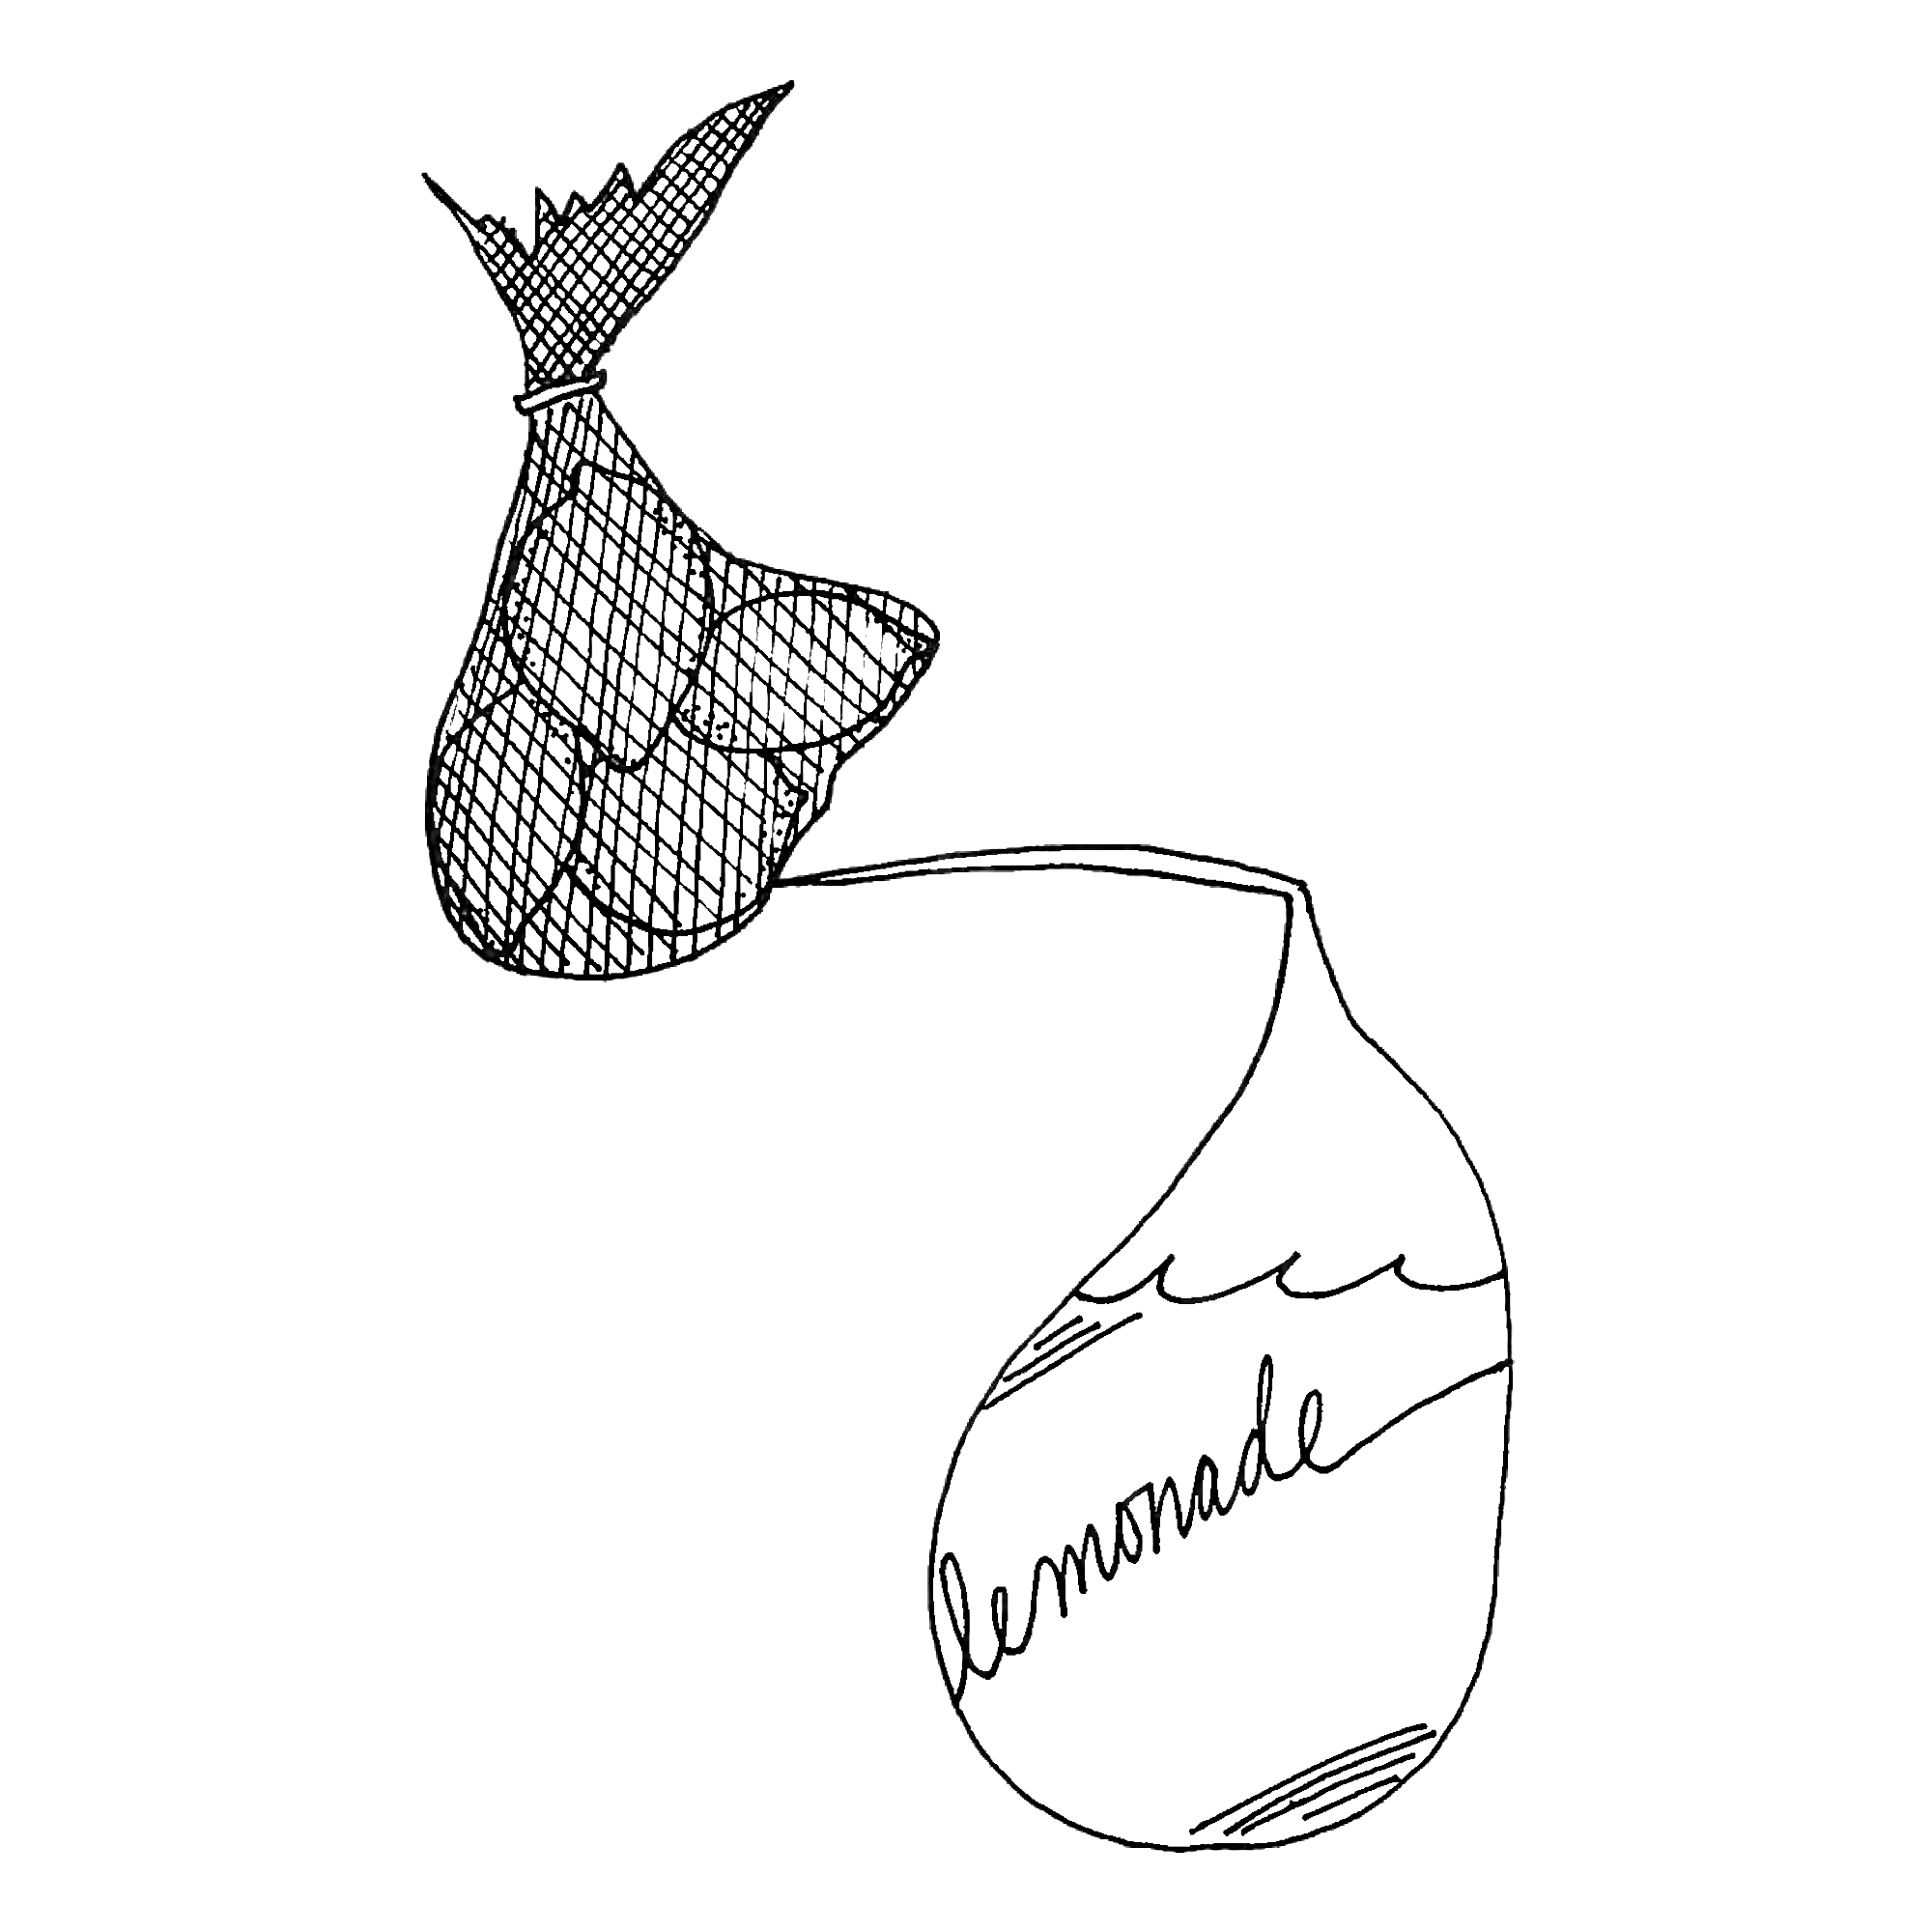 Lemonade_Illustrations_2000x2000_.jpg